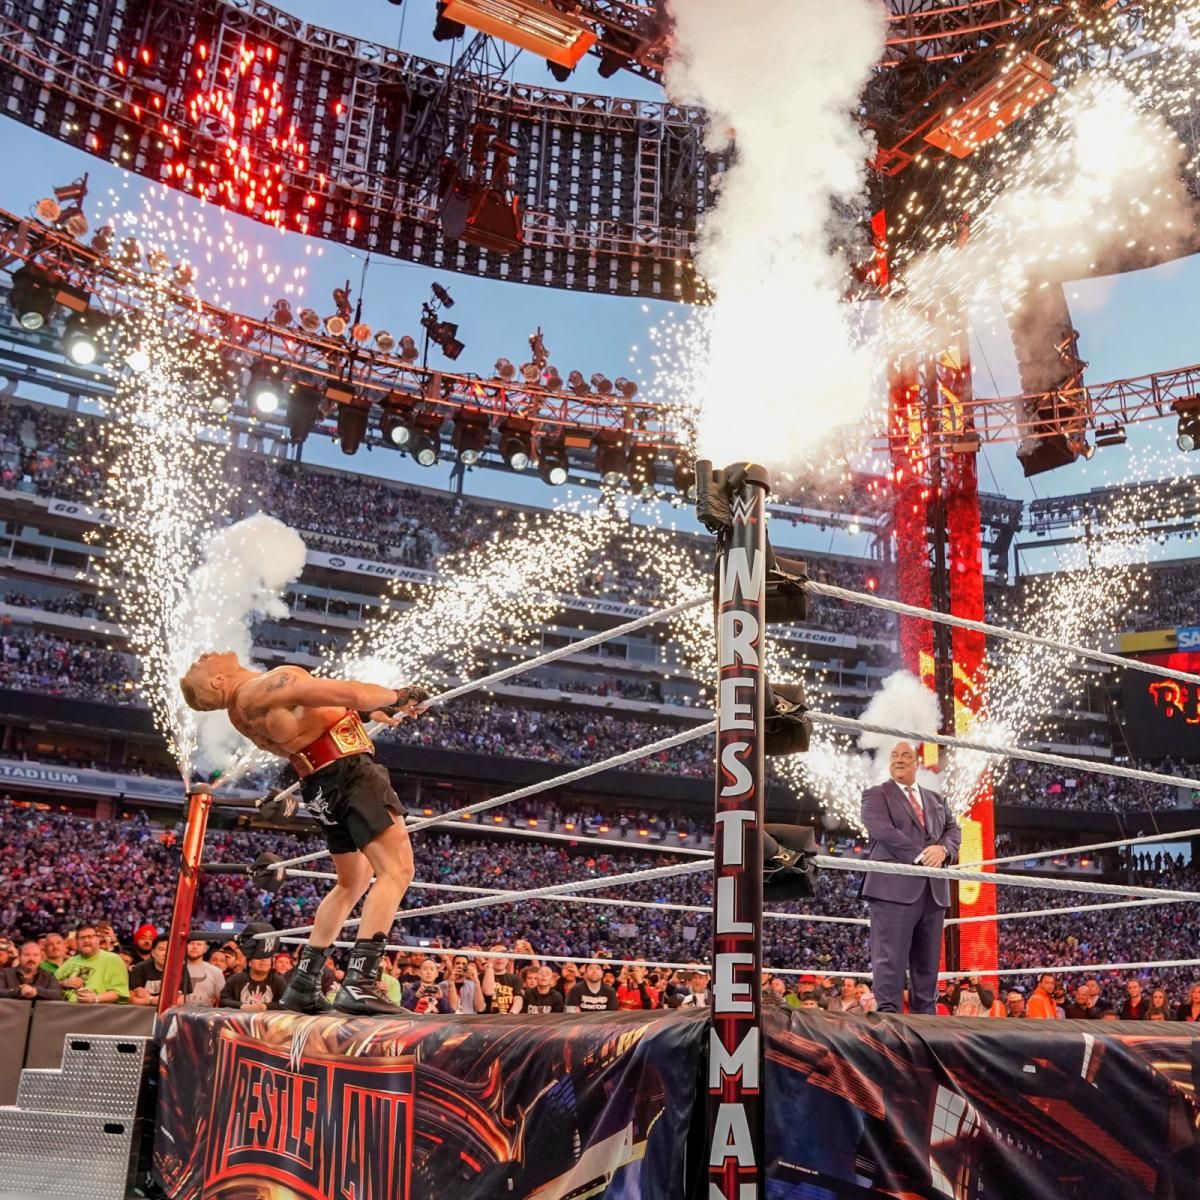 Wwe Wrestlemania 37 Matches And Predictions